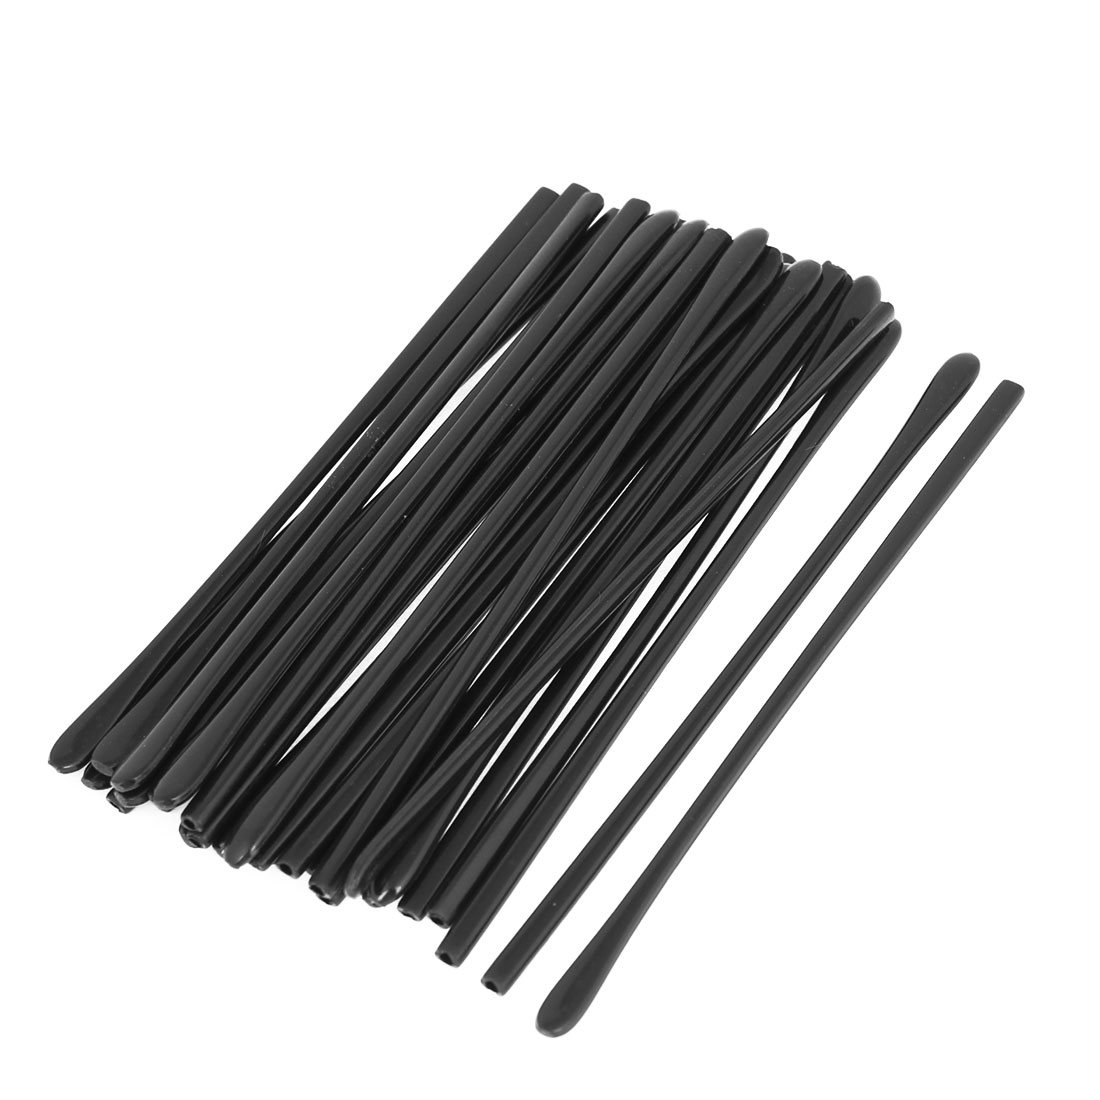 "30PCS Black 4.5"" Long Plastic Cap Covers Holder Support for Eyeglasses Arm Tip"